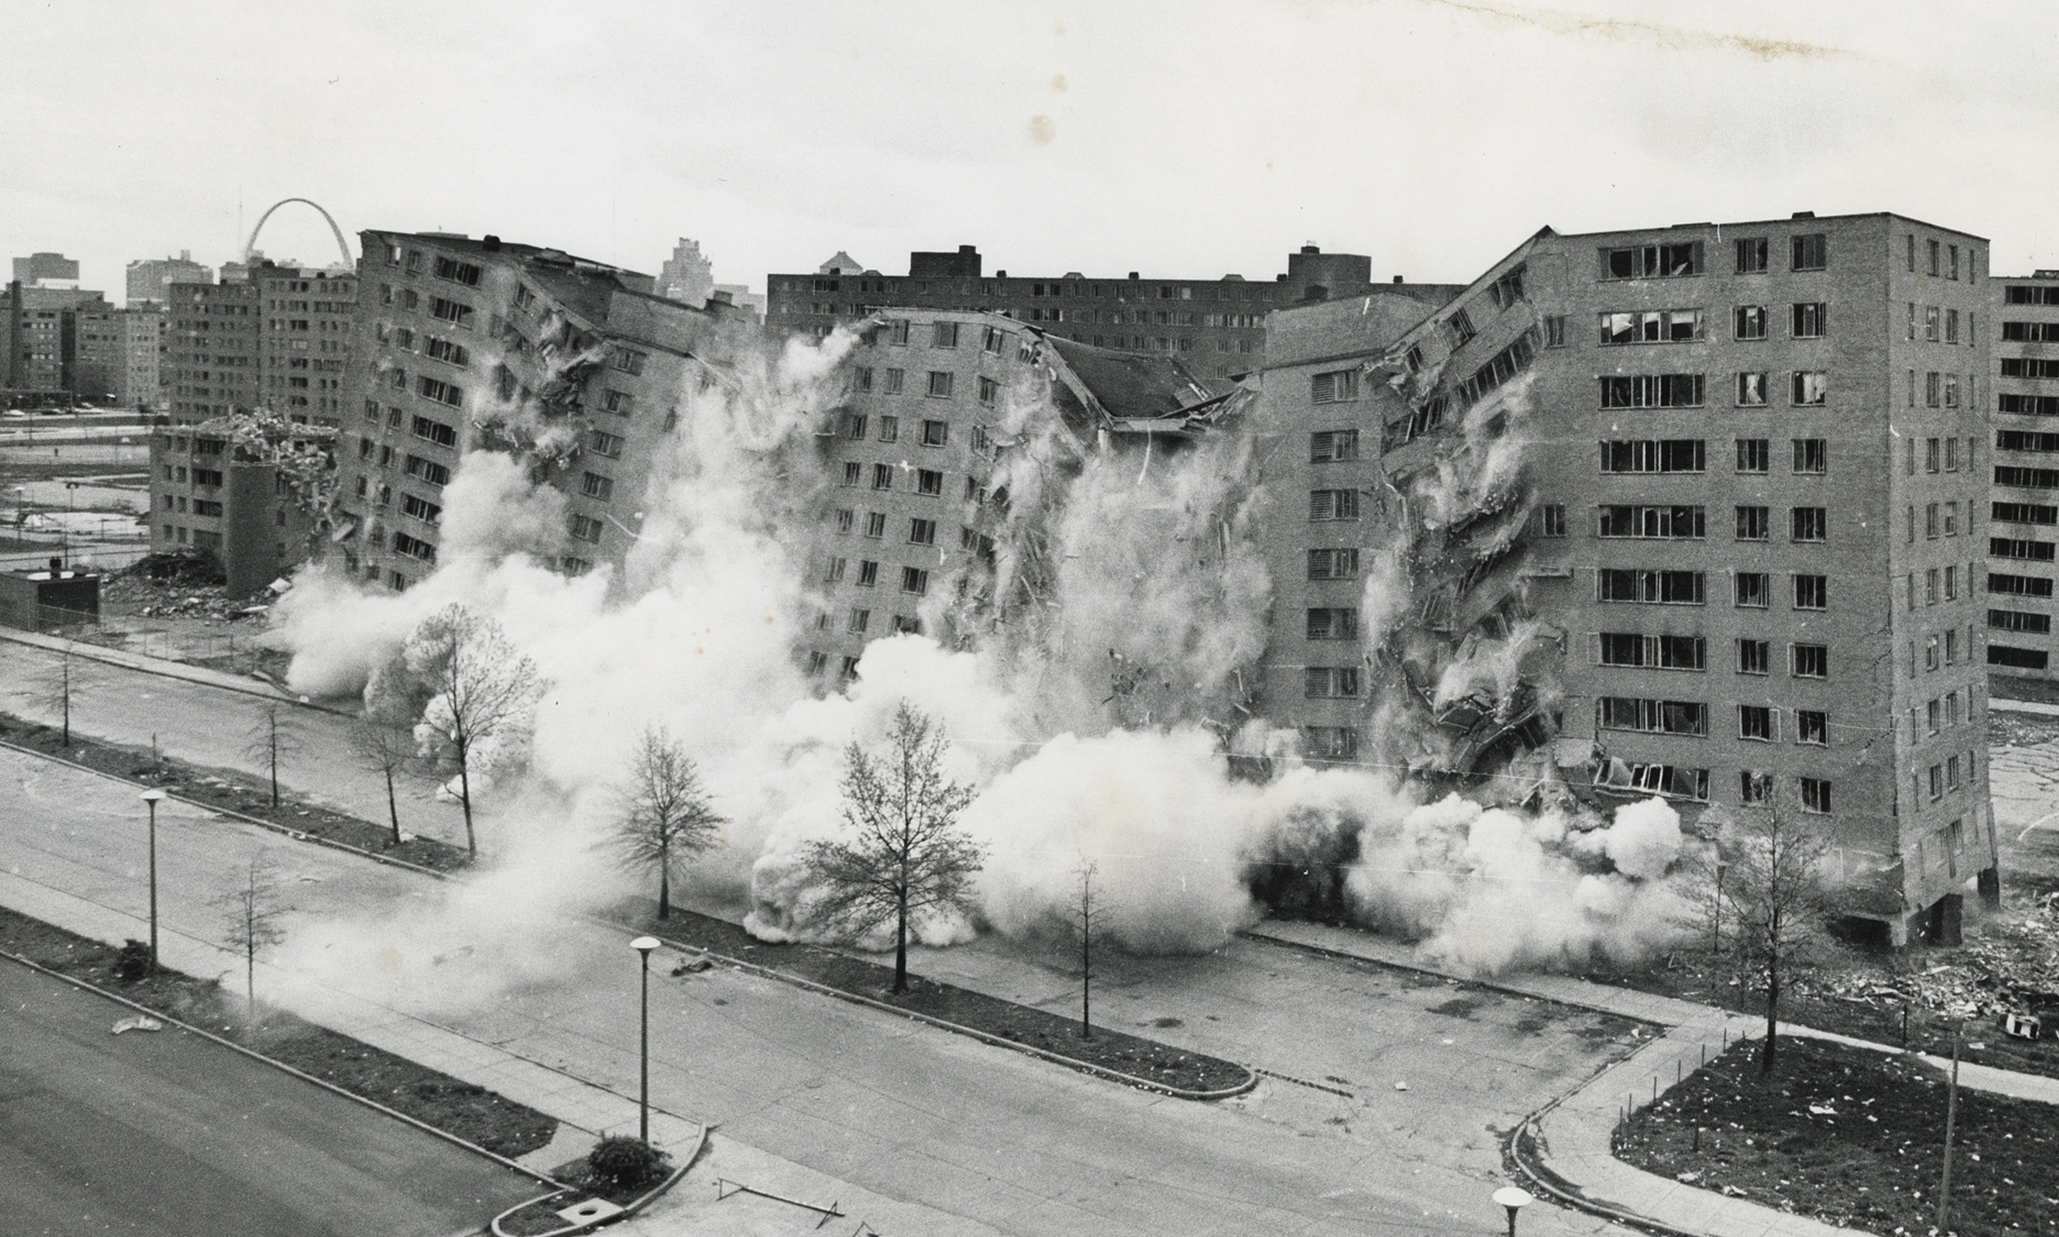 April 1972. The second, widely televised demolition of a Pruitt-Igoe building that followed the March 16 demolition